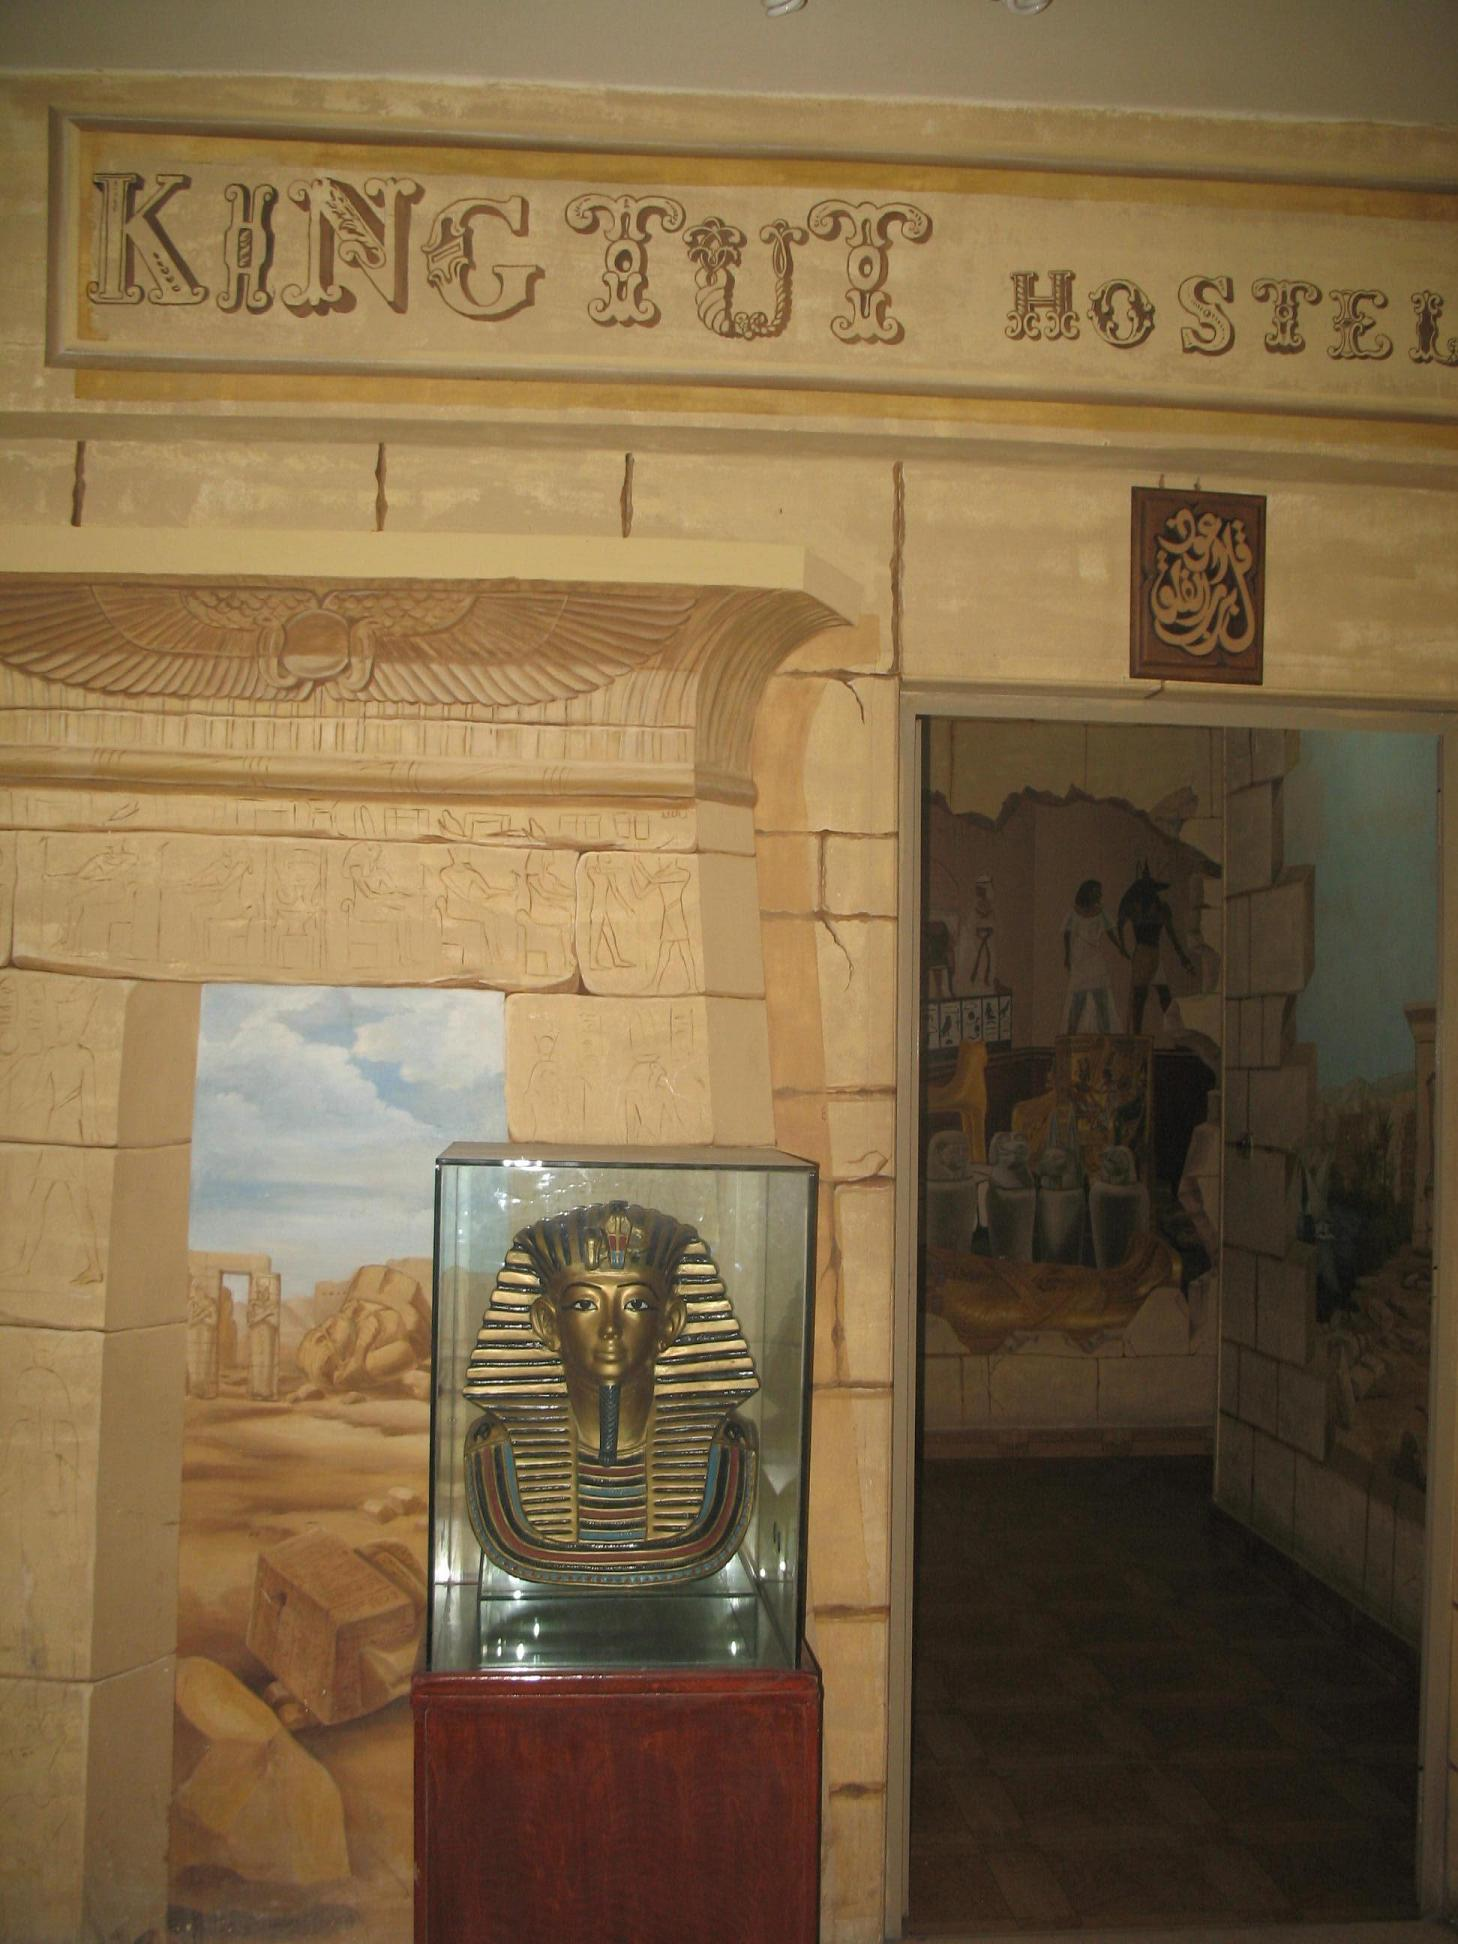 King Tut's Hostel in Downtown, Cairo